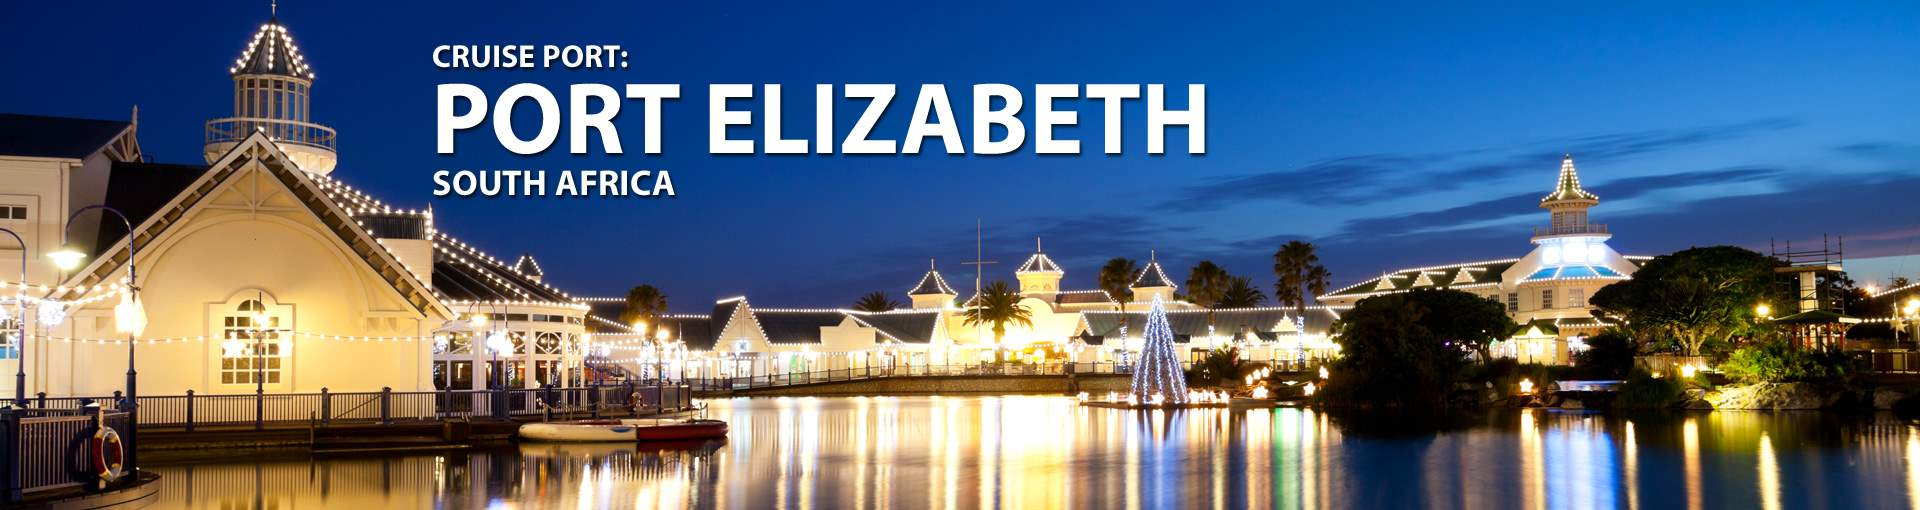 Cruises to Port Elizabeth, South Africa